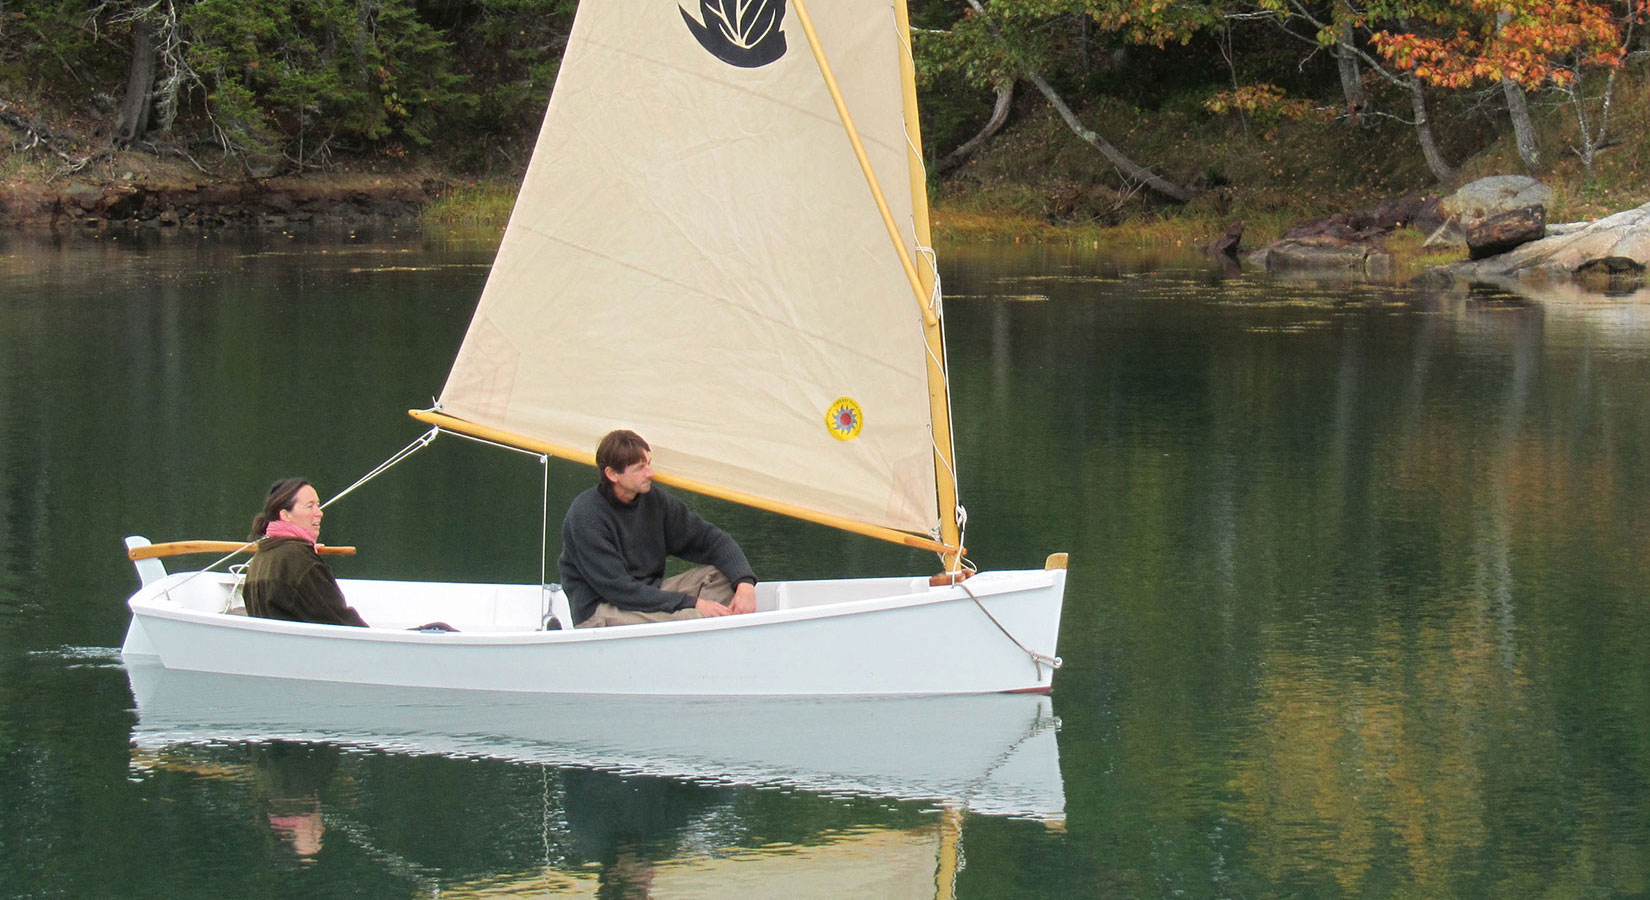 Bevin S Skiff Small Boats Monthly